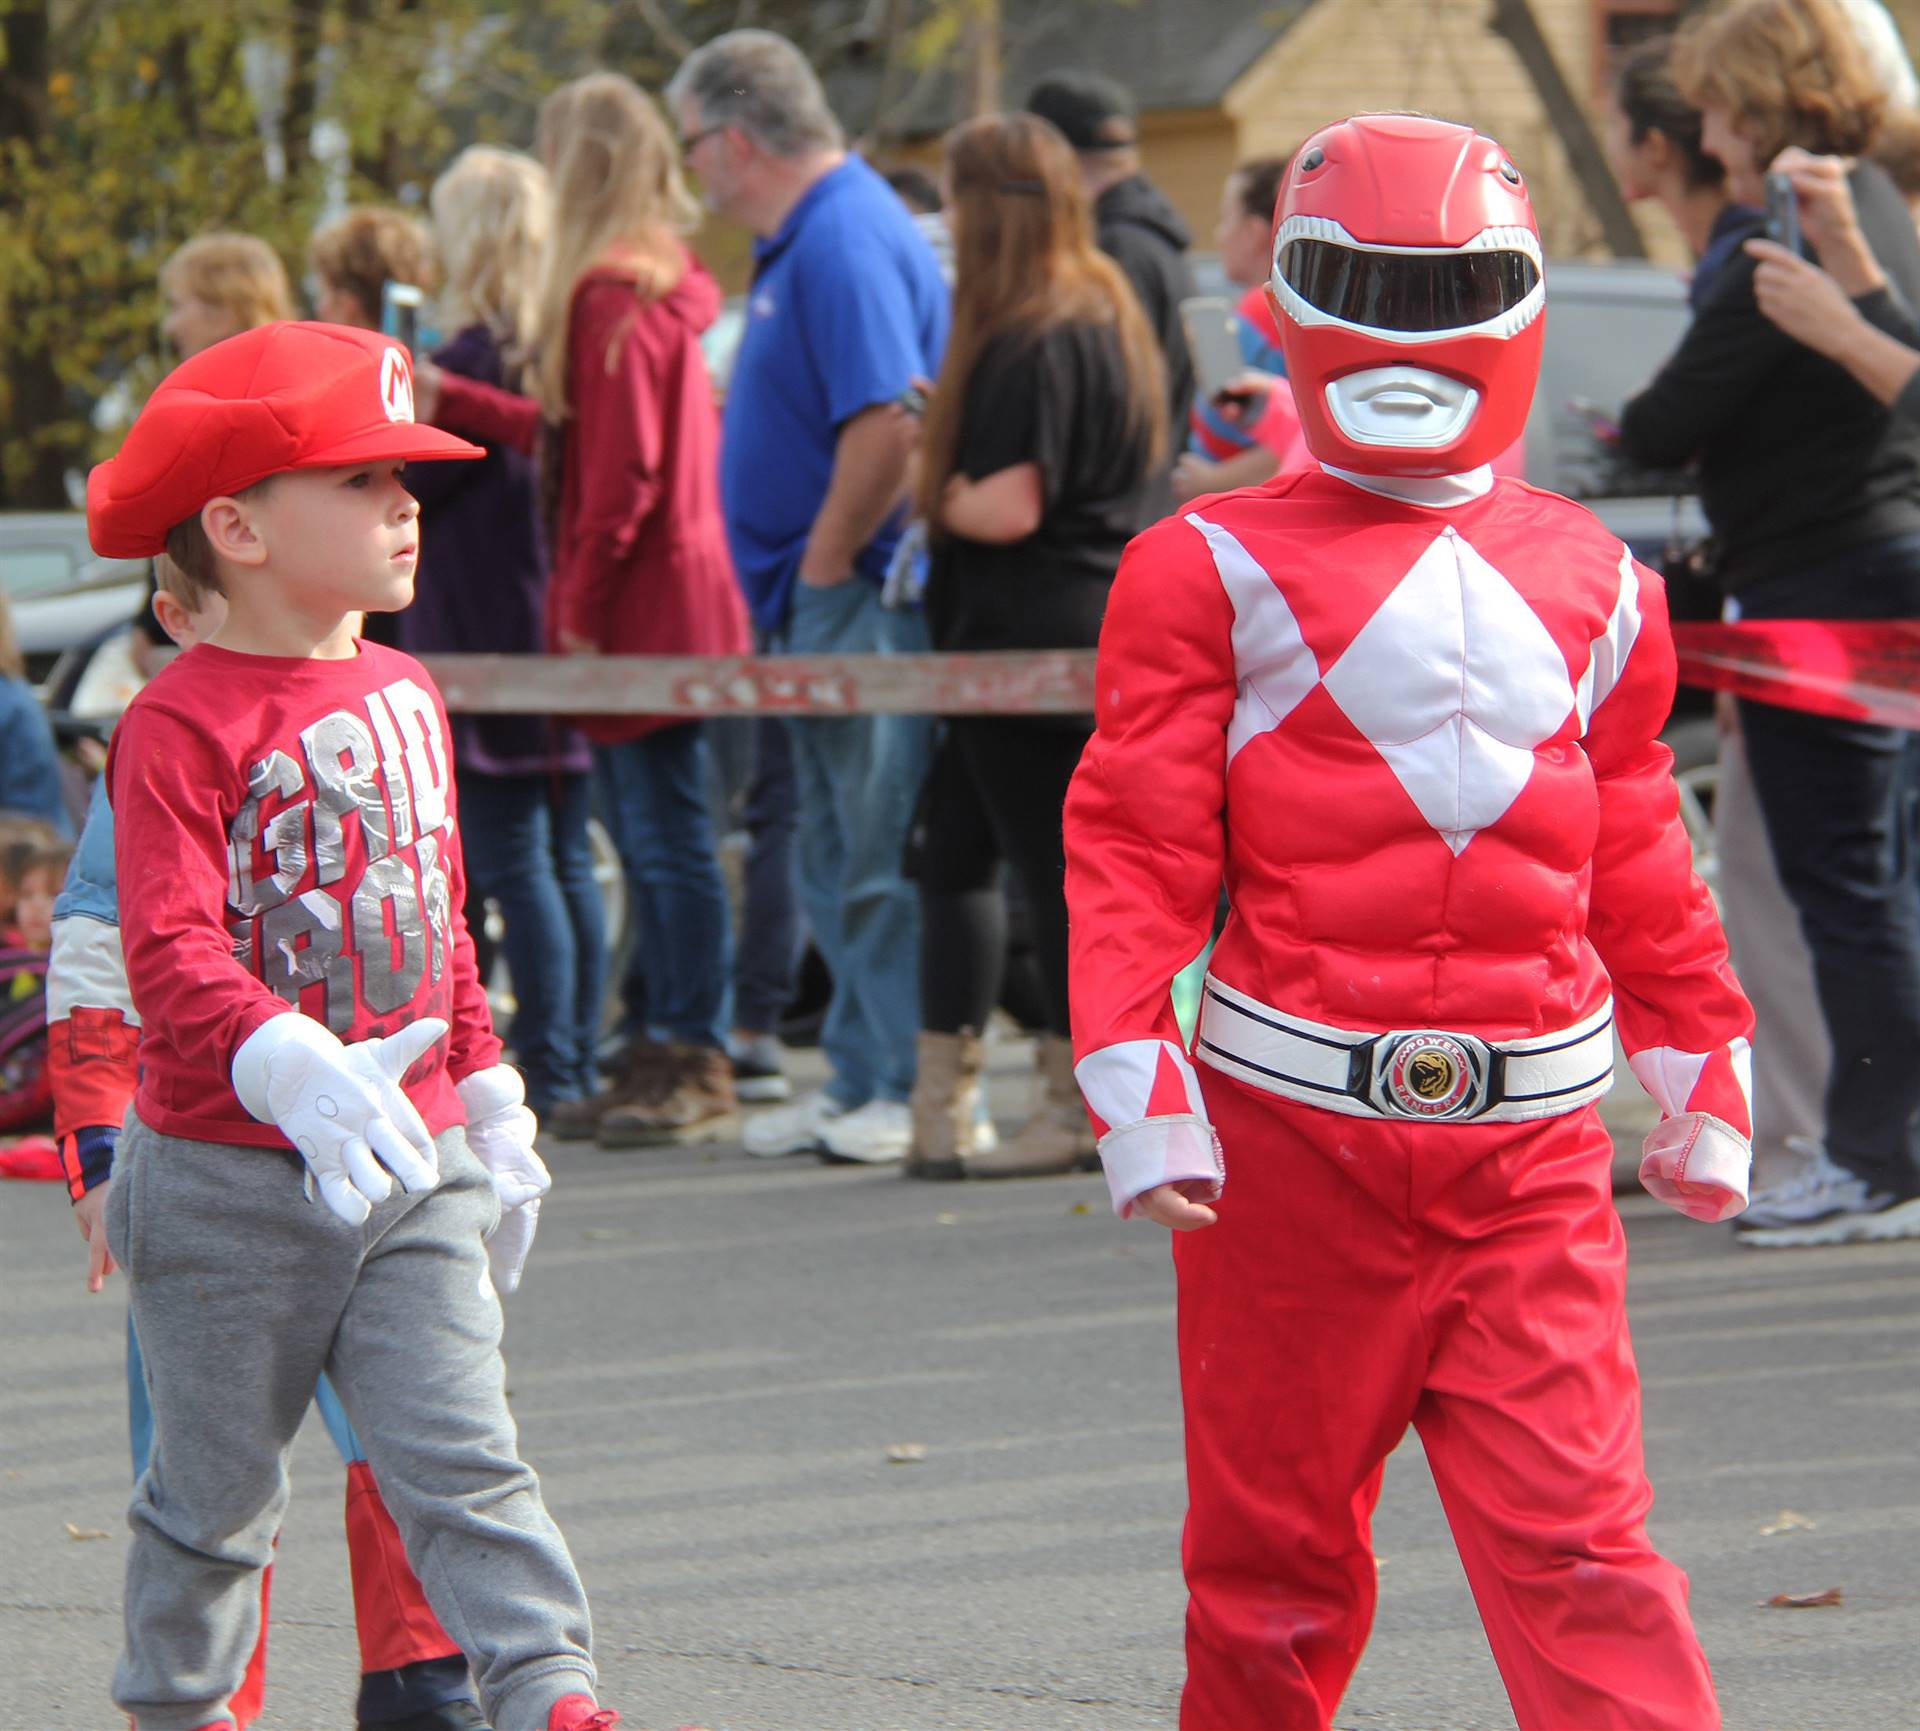 students parading wearing halloween costumes